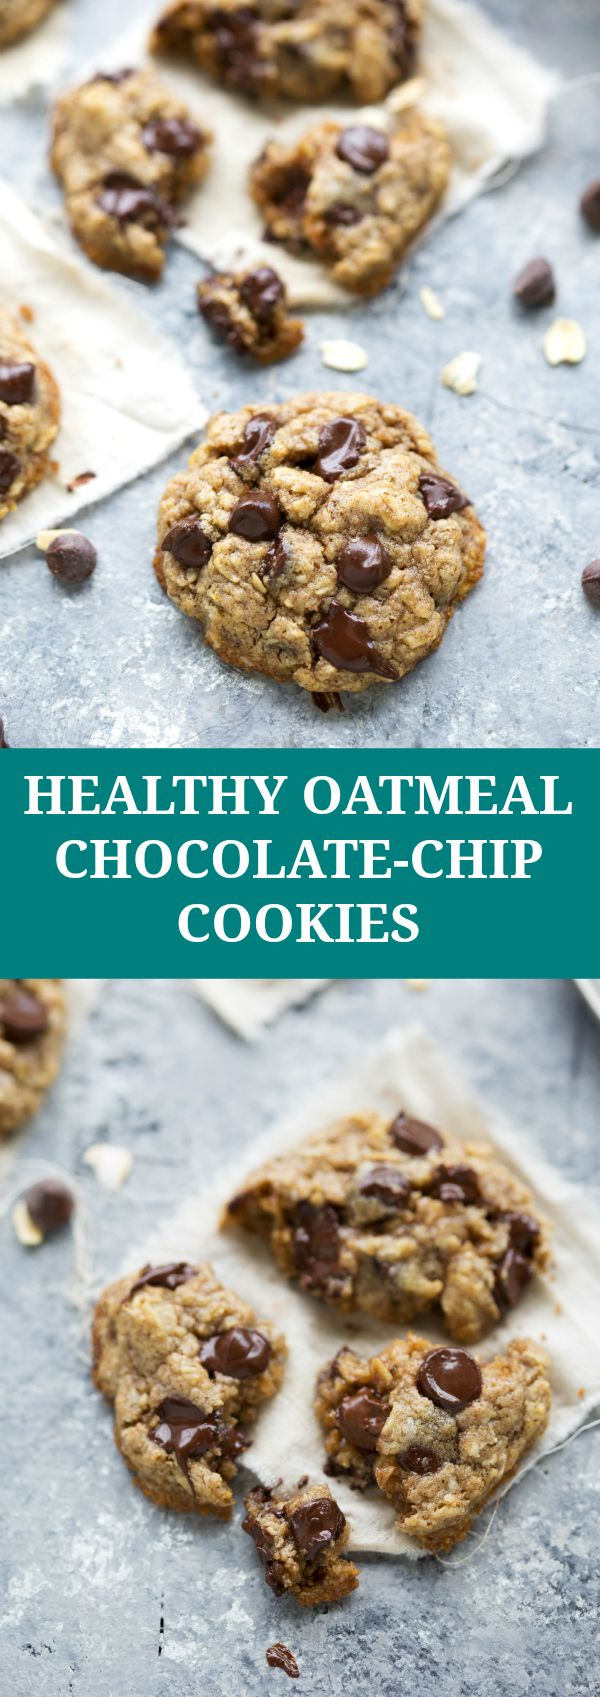 The BEST healthy oatmeal chocolate-chip cookies | Receita ...